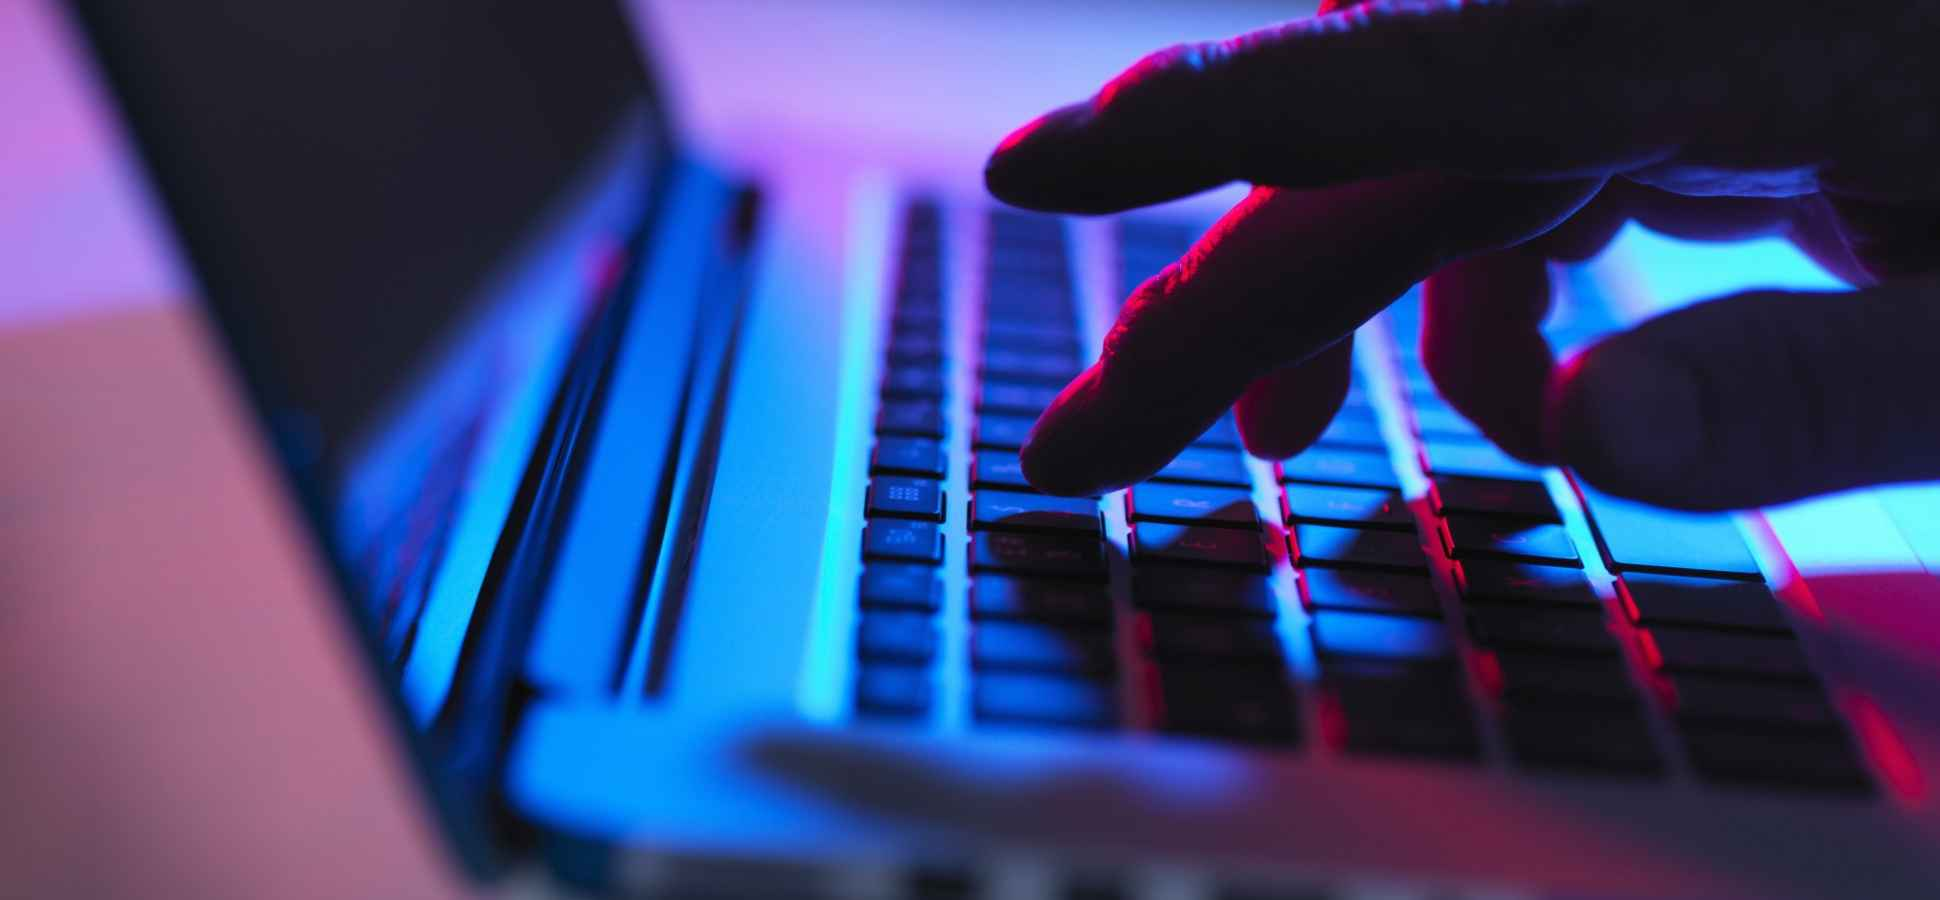 How Cyber Criminals Will Weaponize the Internet of Things in 2017